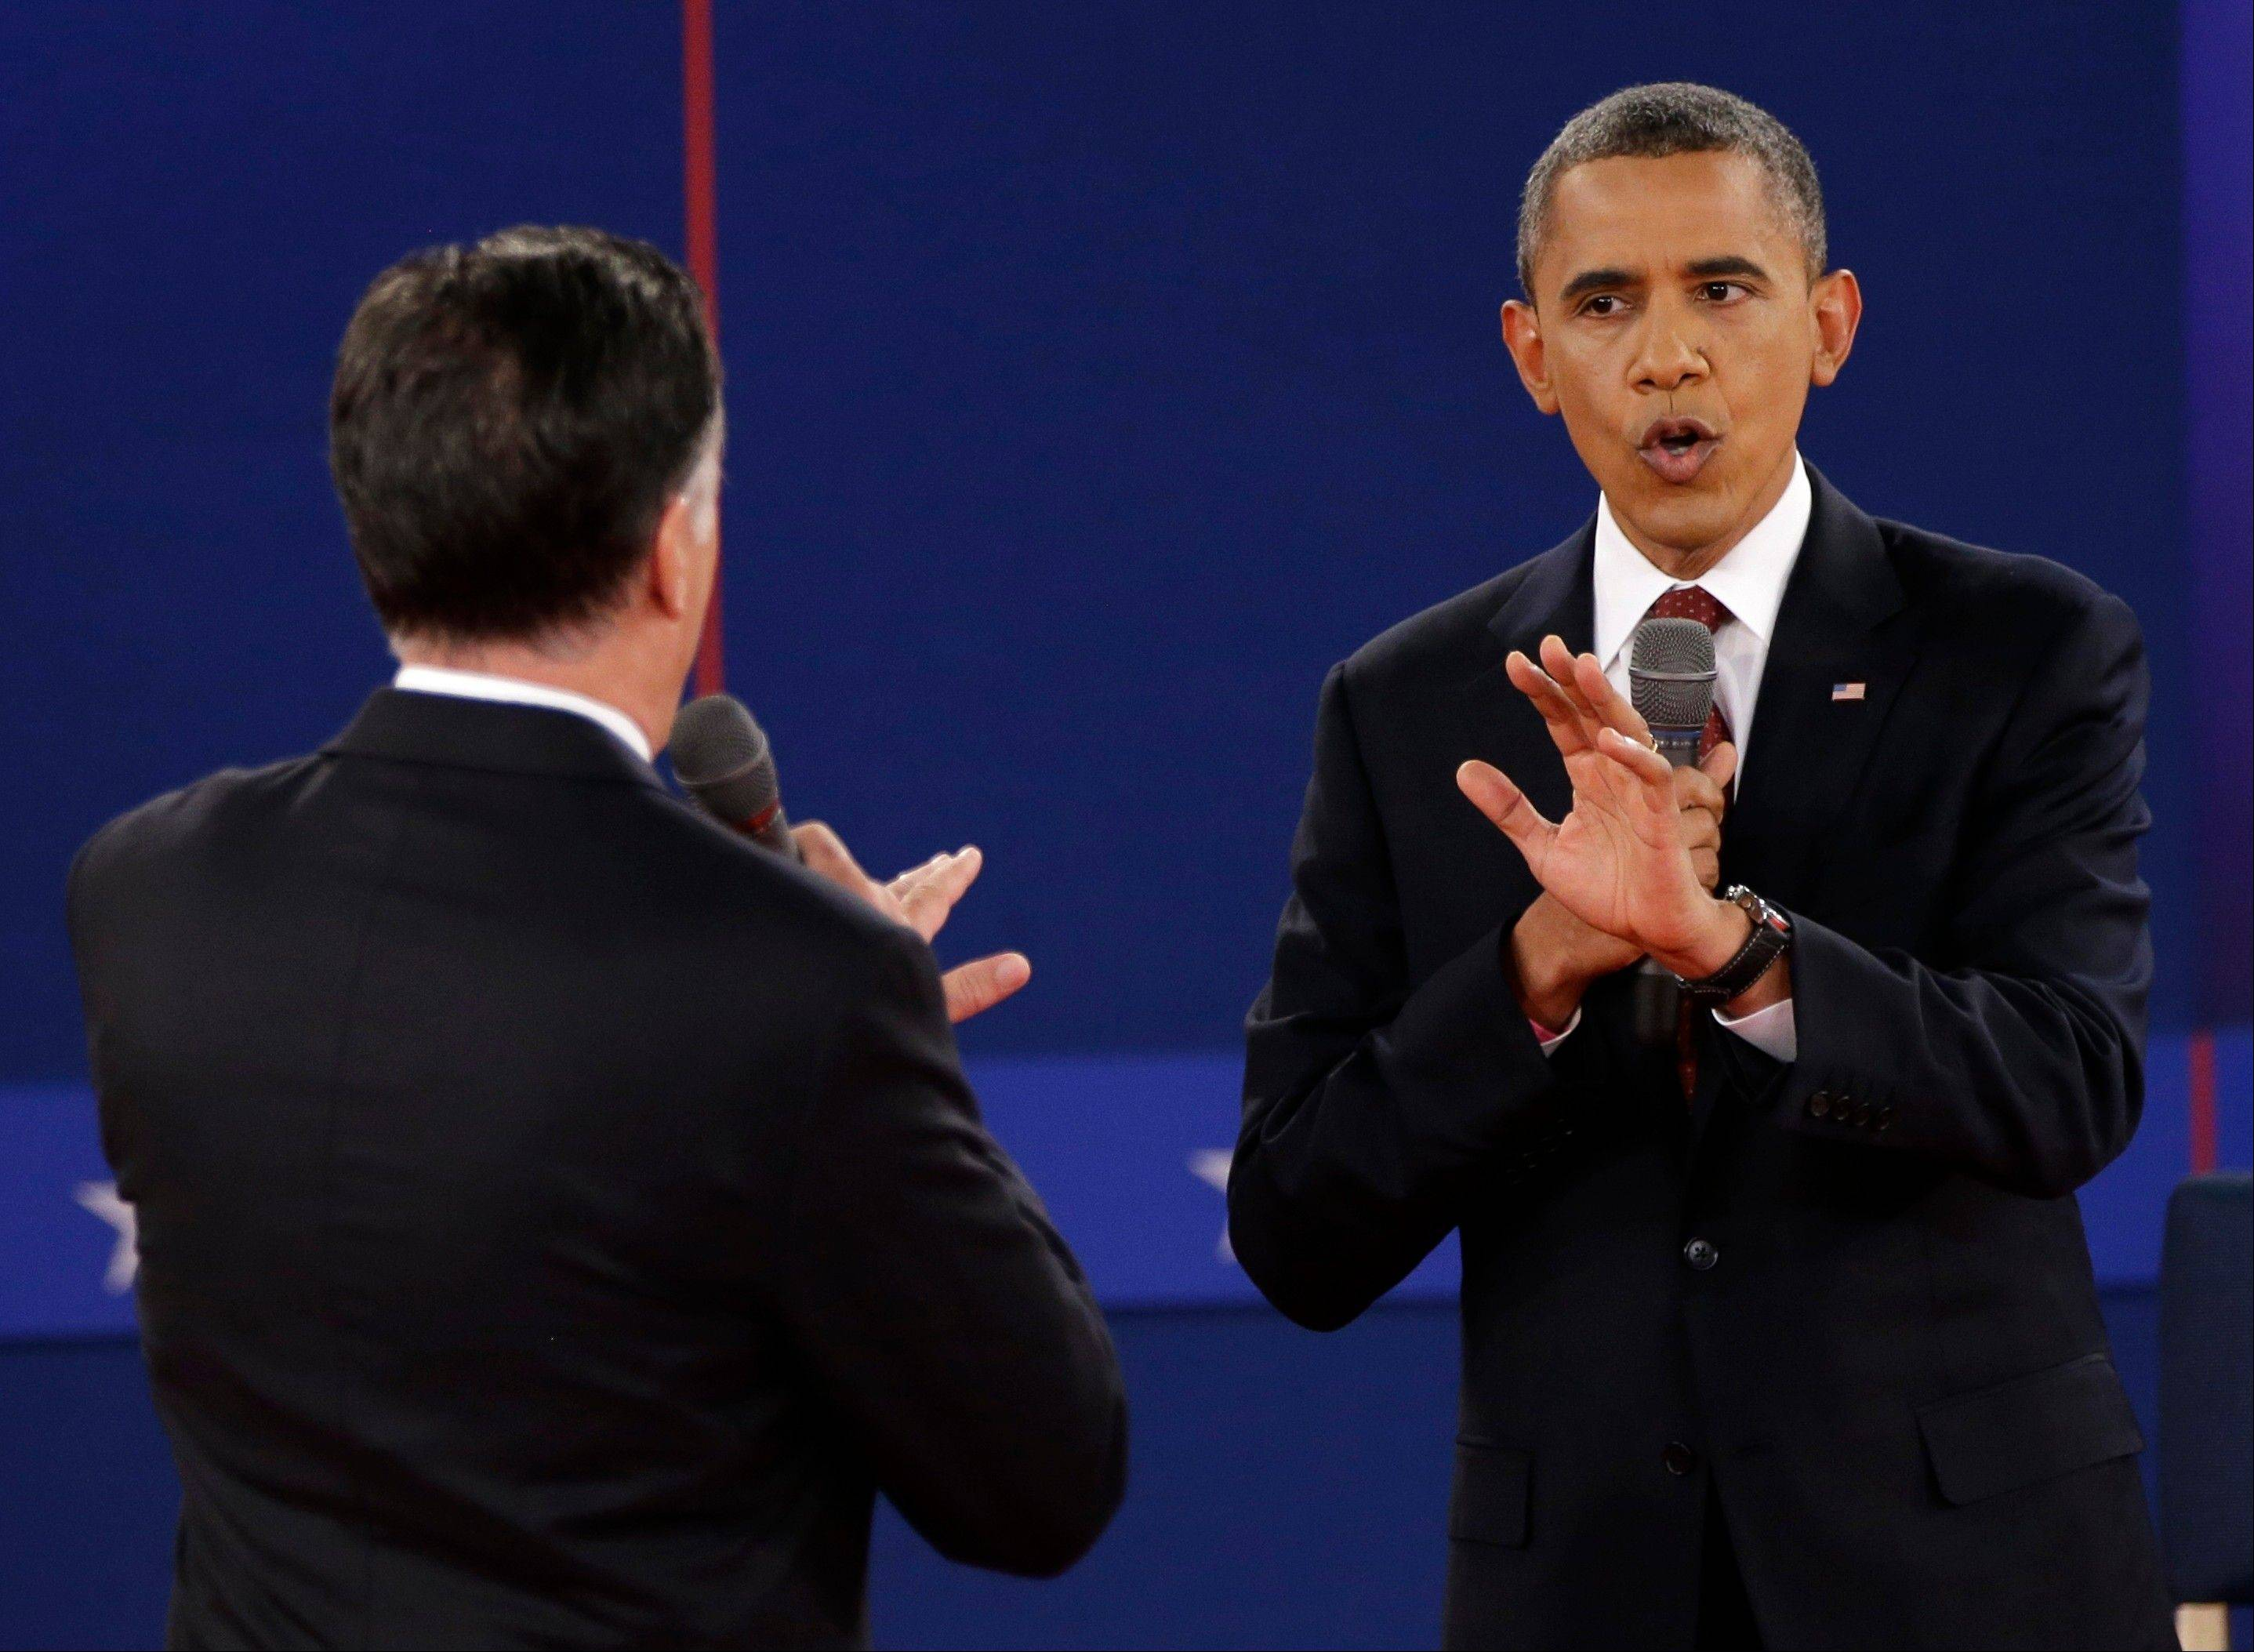 President Barack Obama and Republican presidential nominee Mitt Romney speak during the second presidential debate at Hofstra University, Tuesday, Oct. 16, 2012, in Hempstead, N.Y.